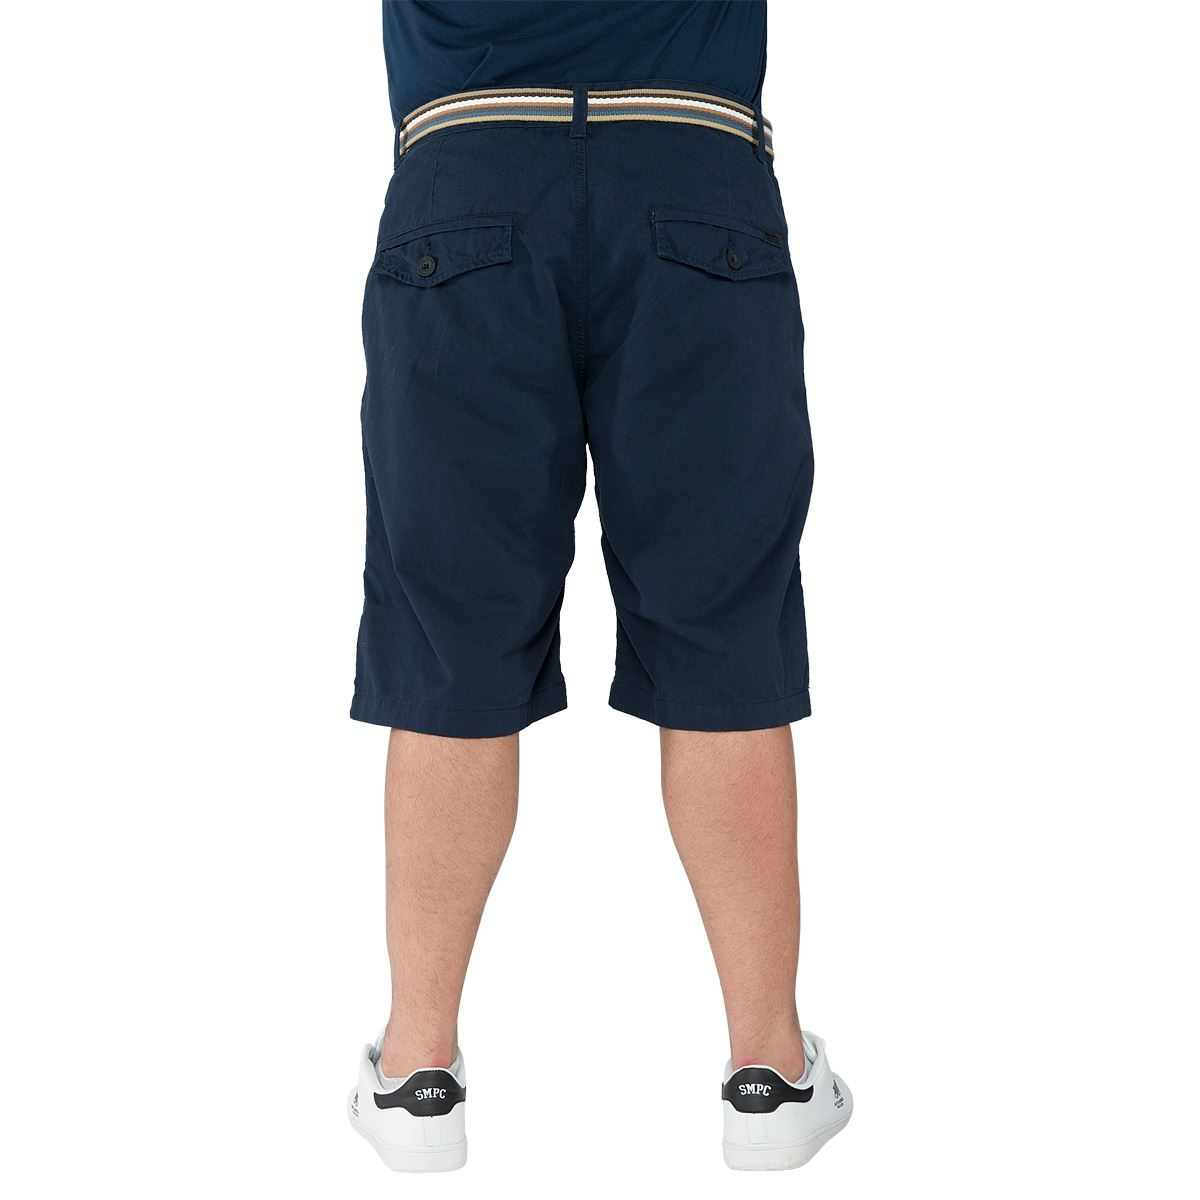 I am the founder of JOCKEY CLUB LTD - SHORT MEN'S SIZES and its web site, senonsdownload-gv.cf Since we have been supplying men 5' 7